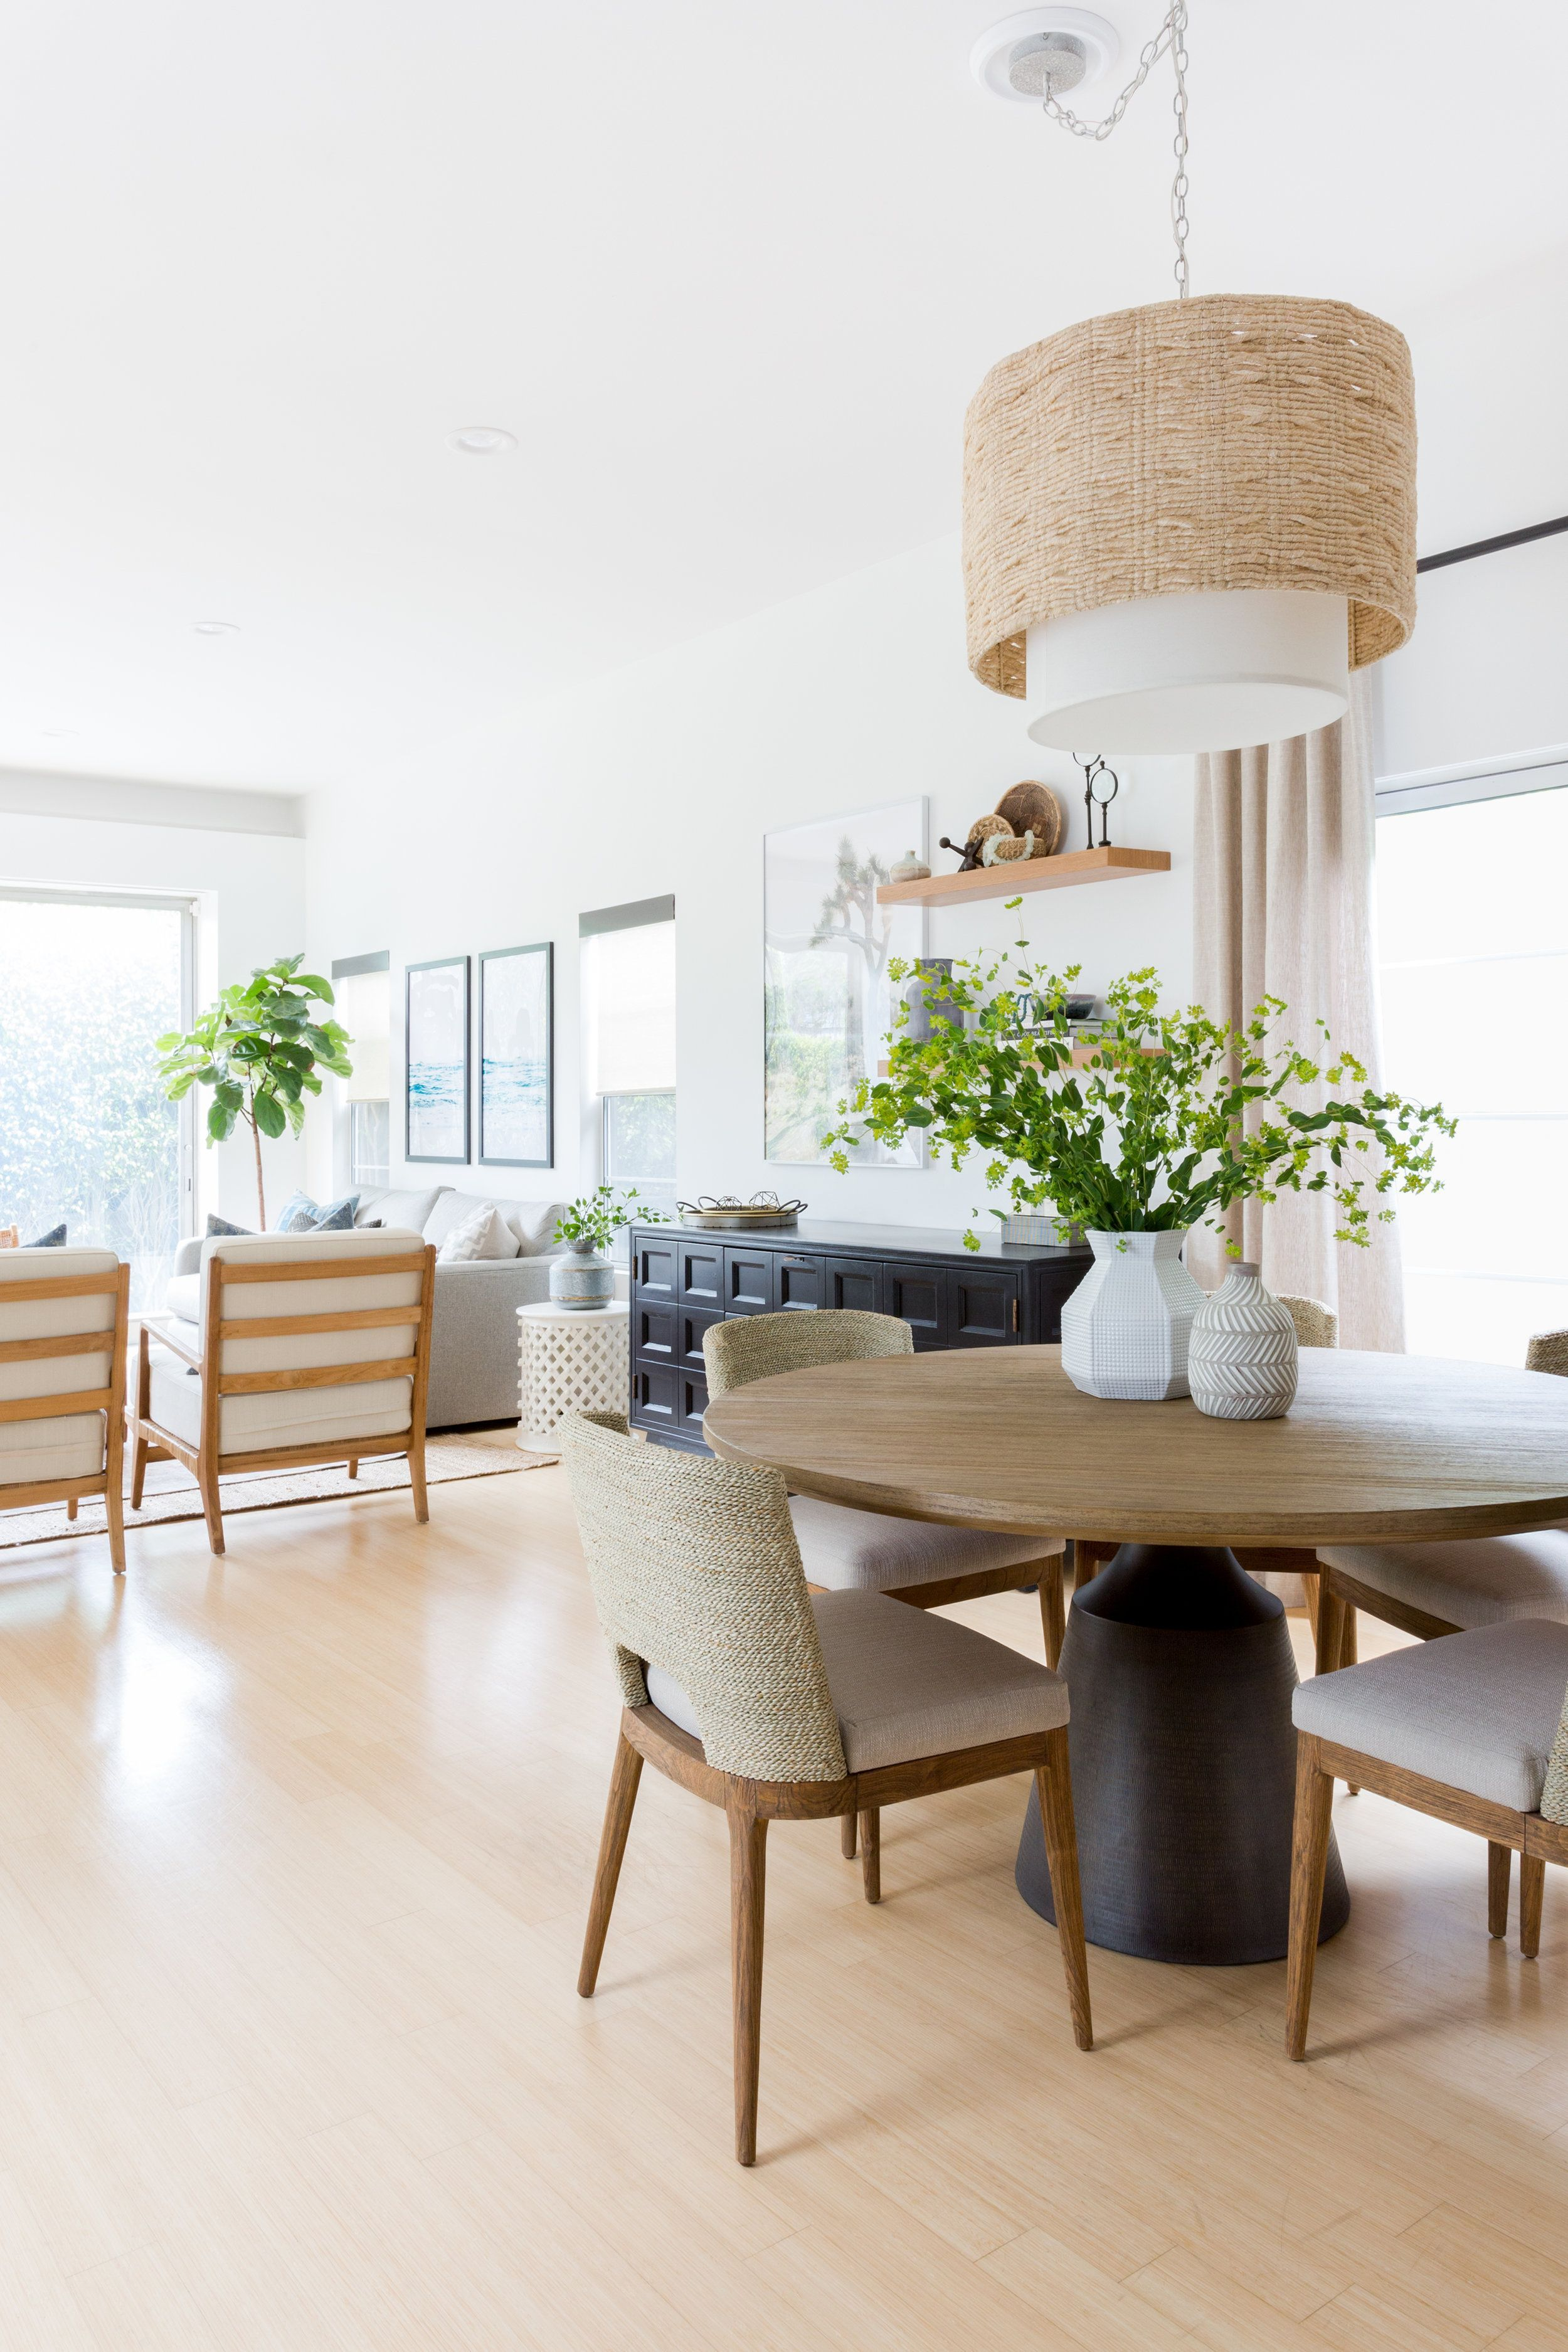 Homedesign Casual Dining Rooms Dining Room Design Affordable Dining Room